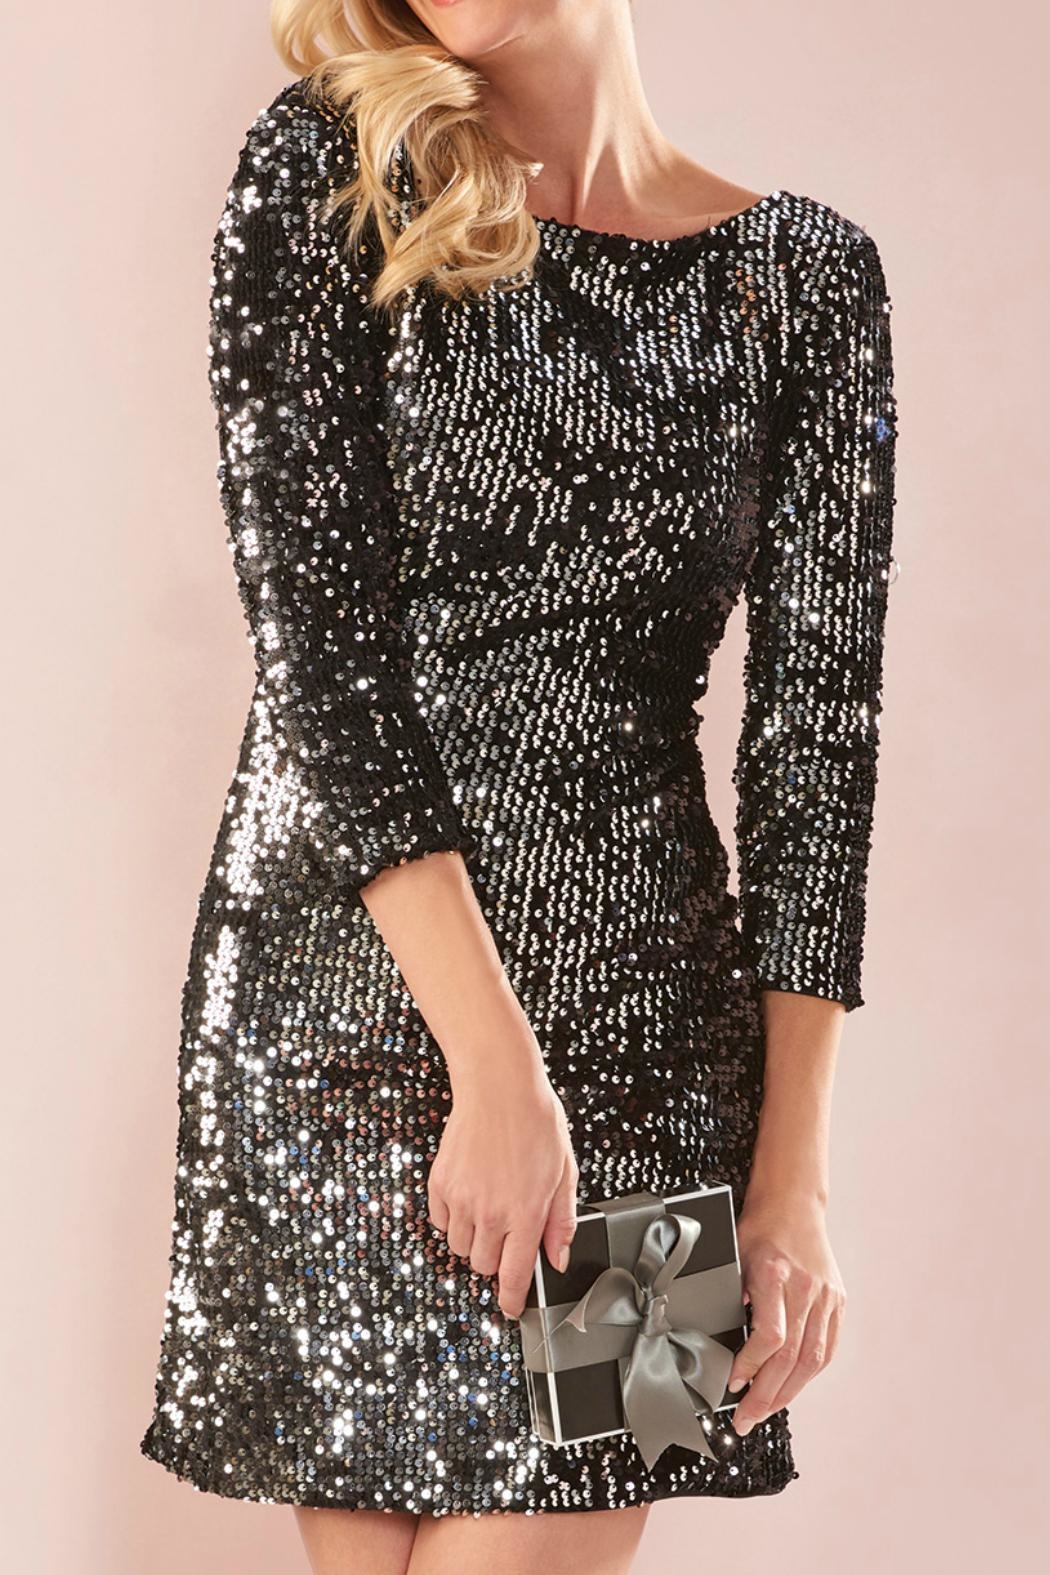 Charlie Paige Shimmery Sequin Dress - Main Image